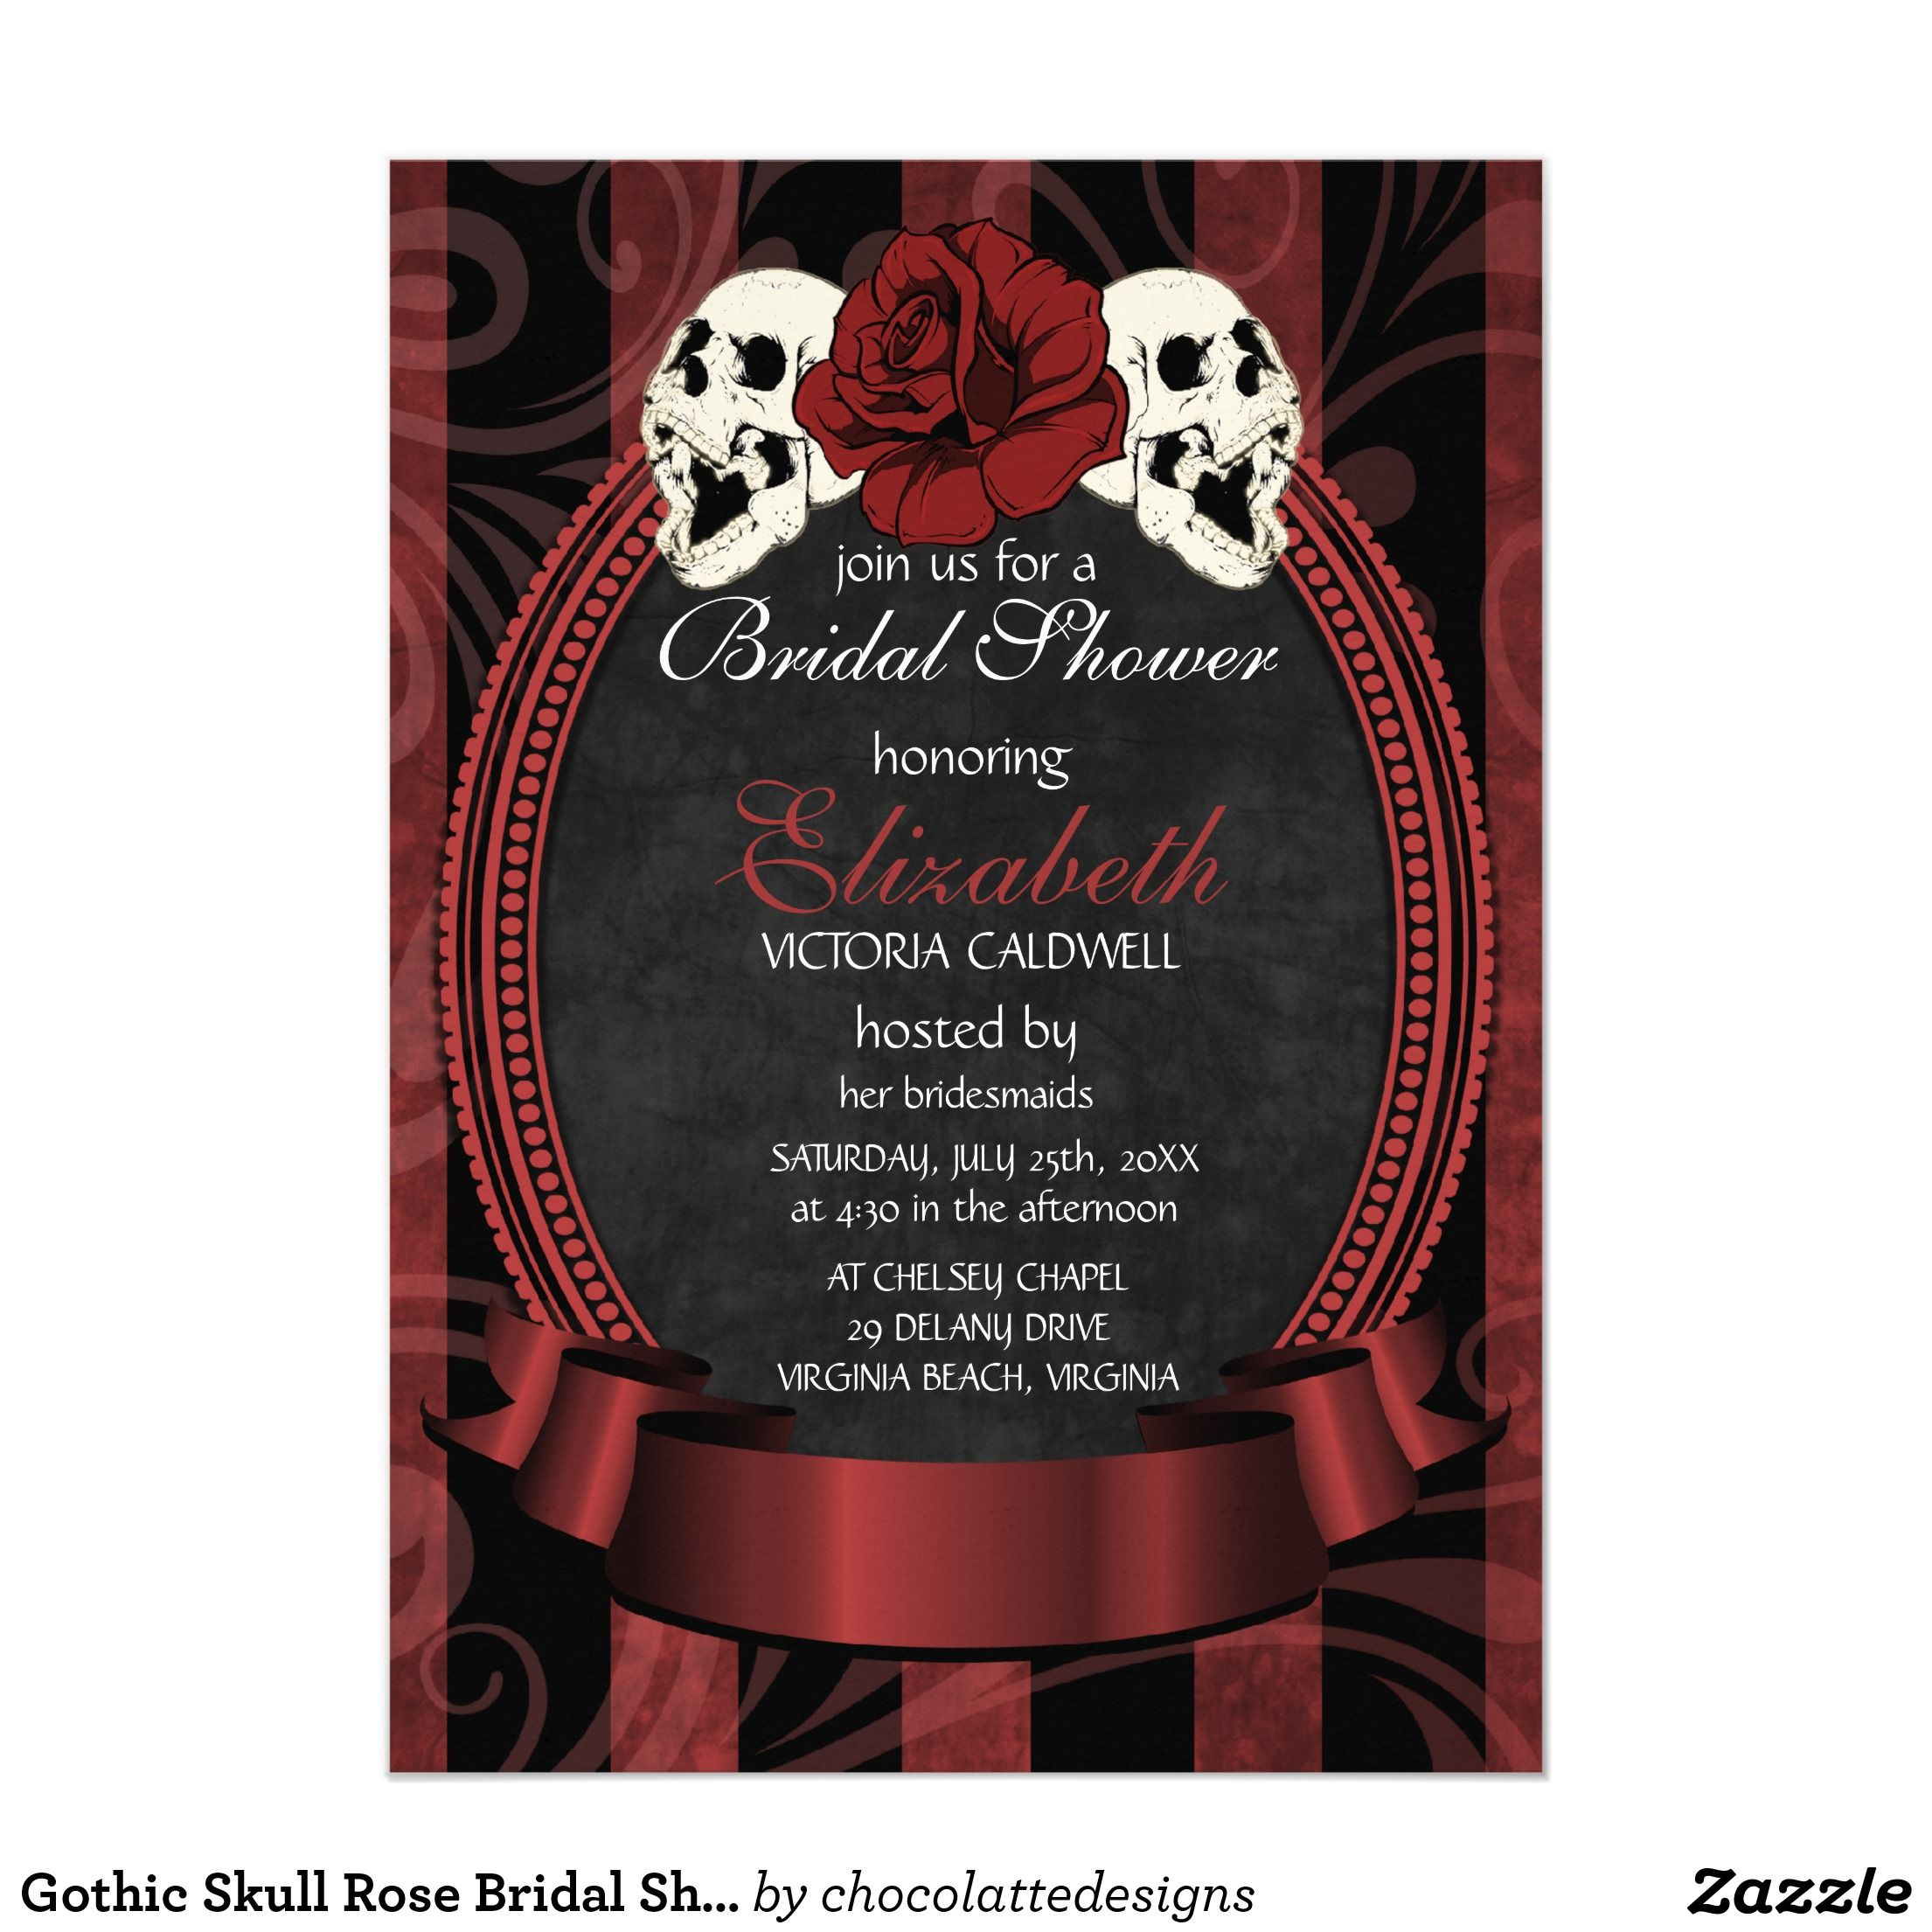 Gothic Skull Rose Bridal Shower Invitation | red | Wedding ...